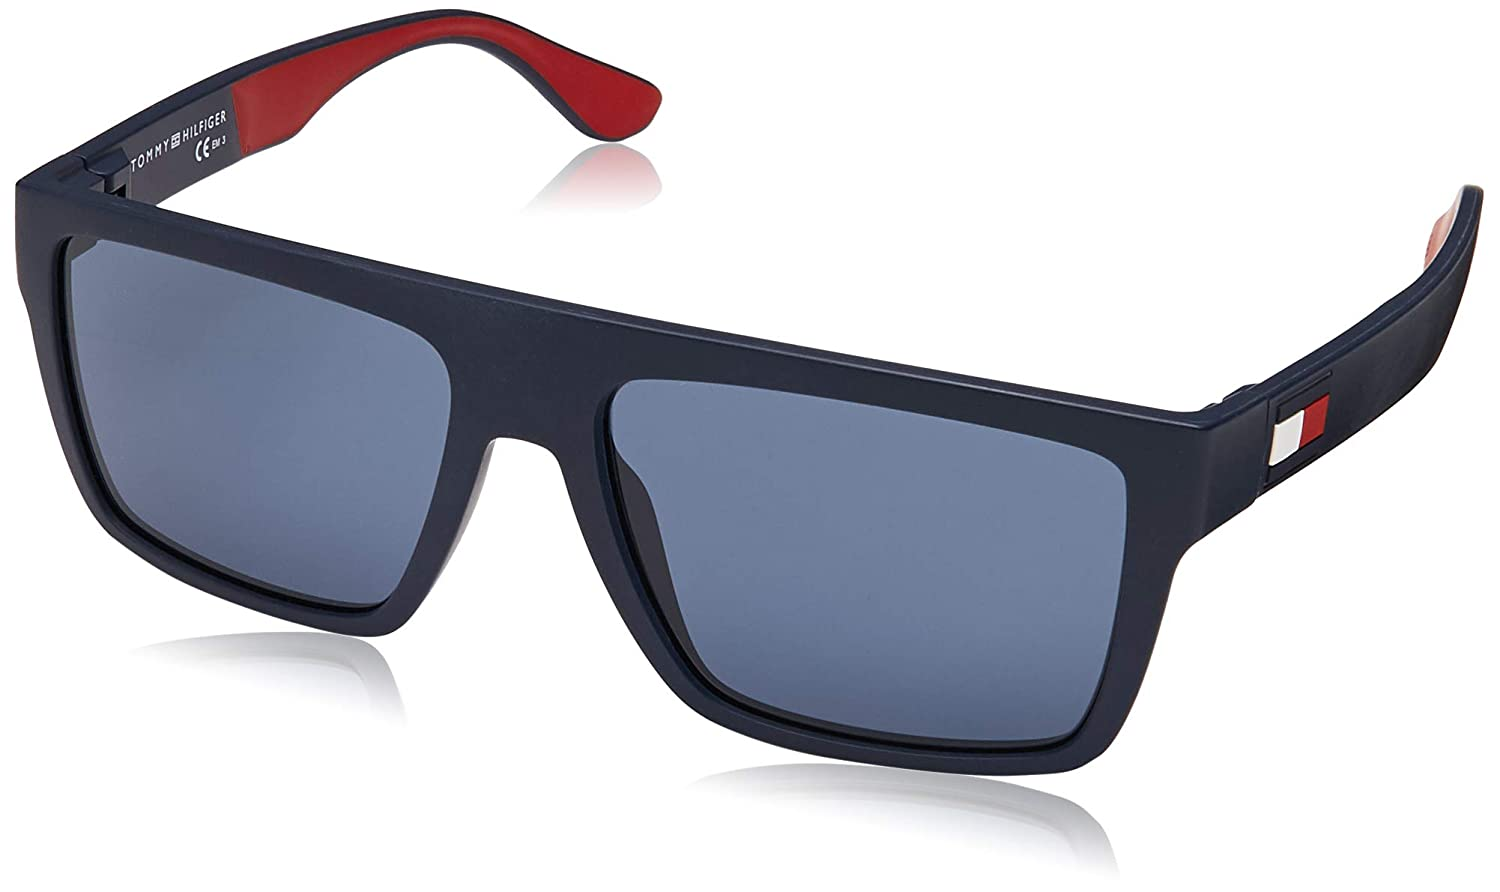 22c52d7b2e73 Amazon.com: Tommy Hilfiger TH1605/S IPQ Matte Blue TH1605/S Square  Sunglasses Lens Category: Tommy Hilfiger: Clothing